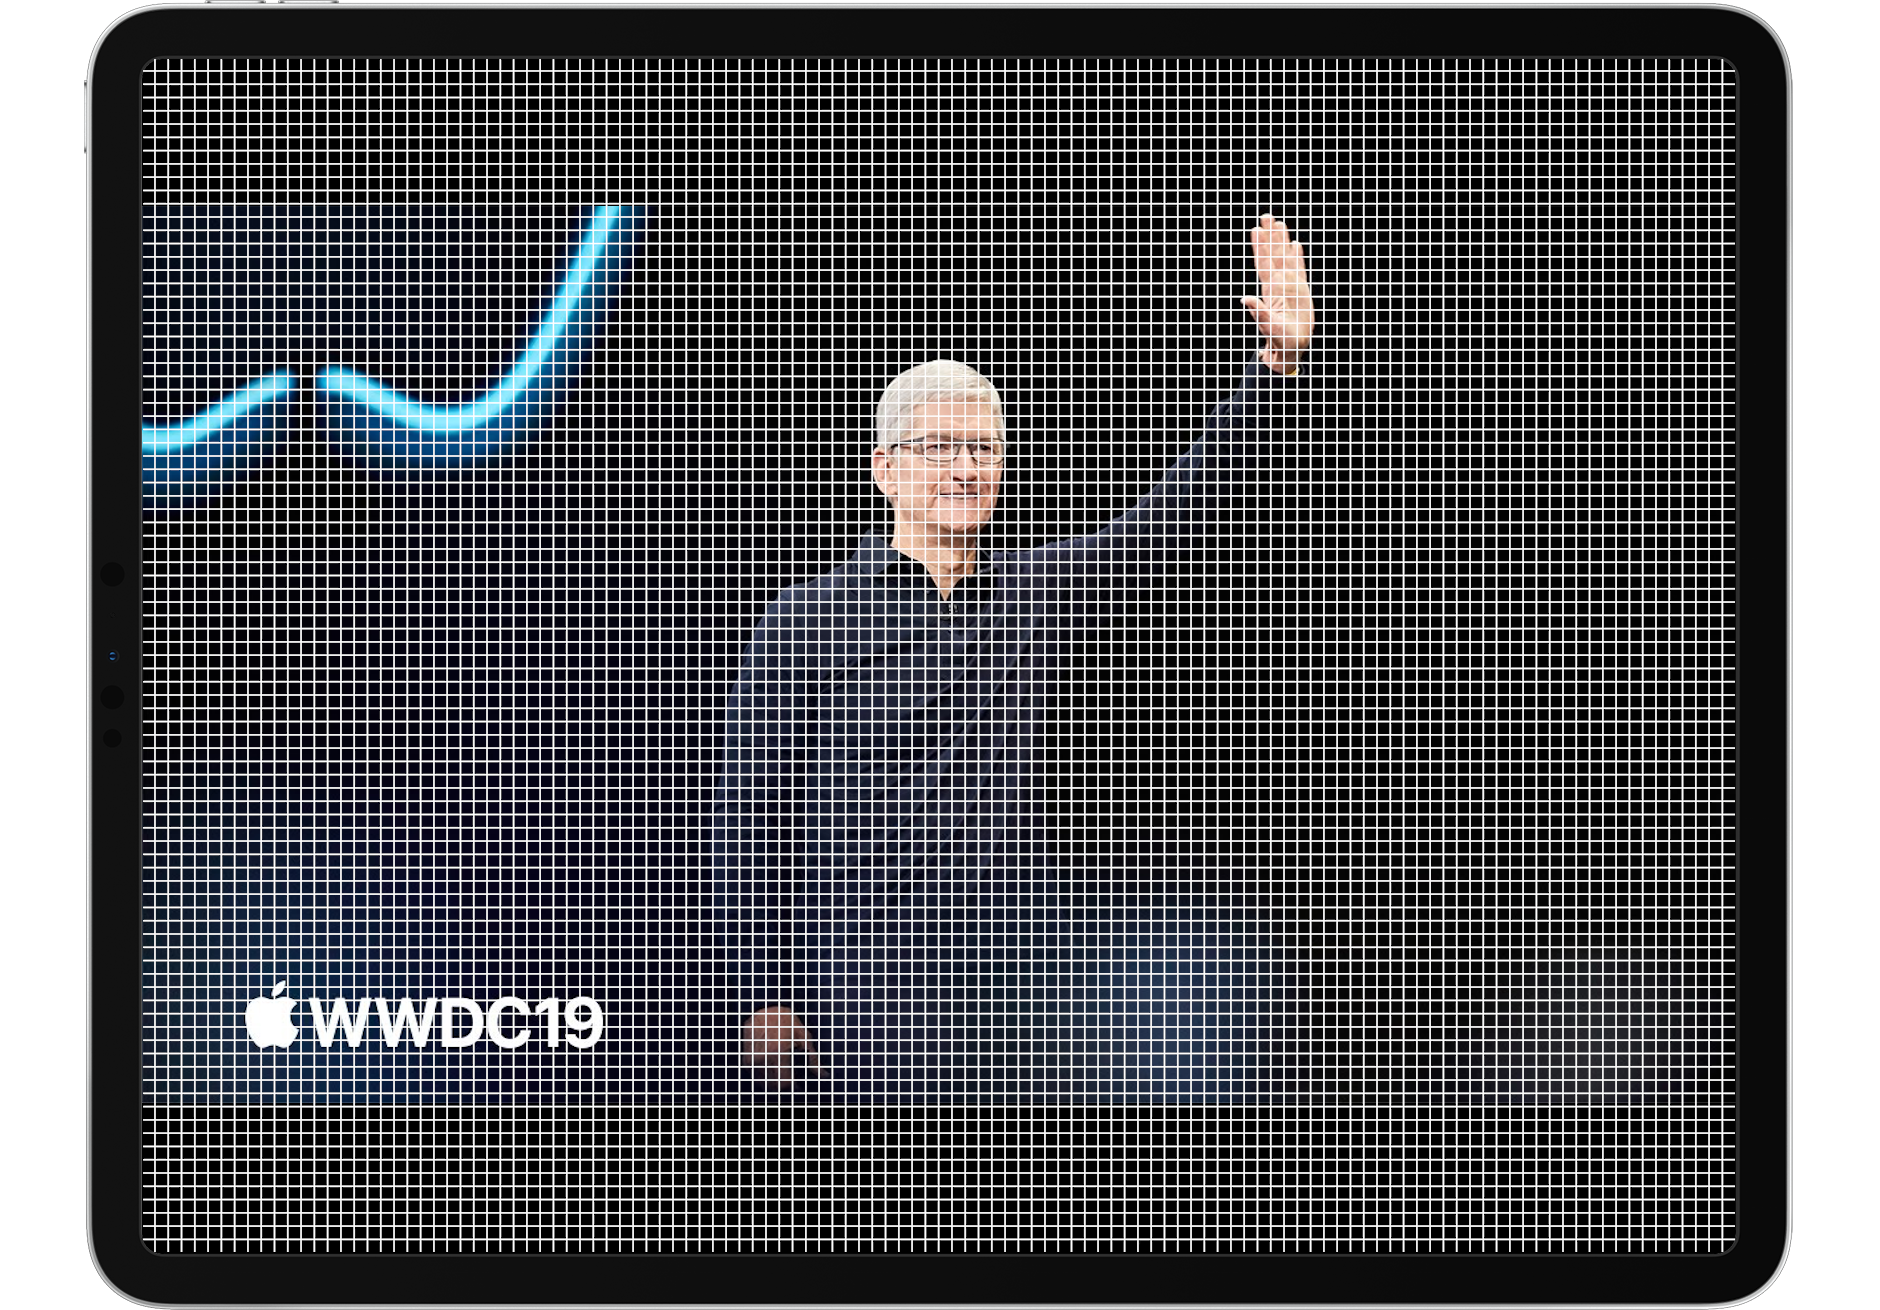 wwdc19video.png